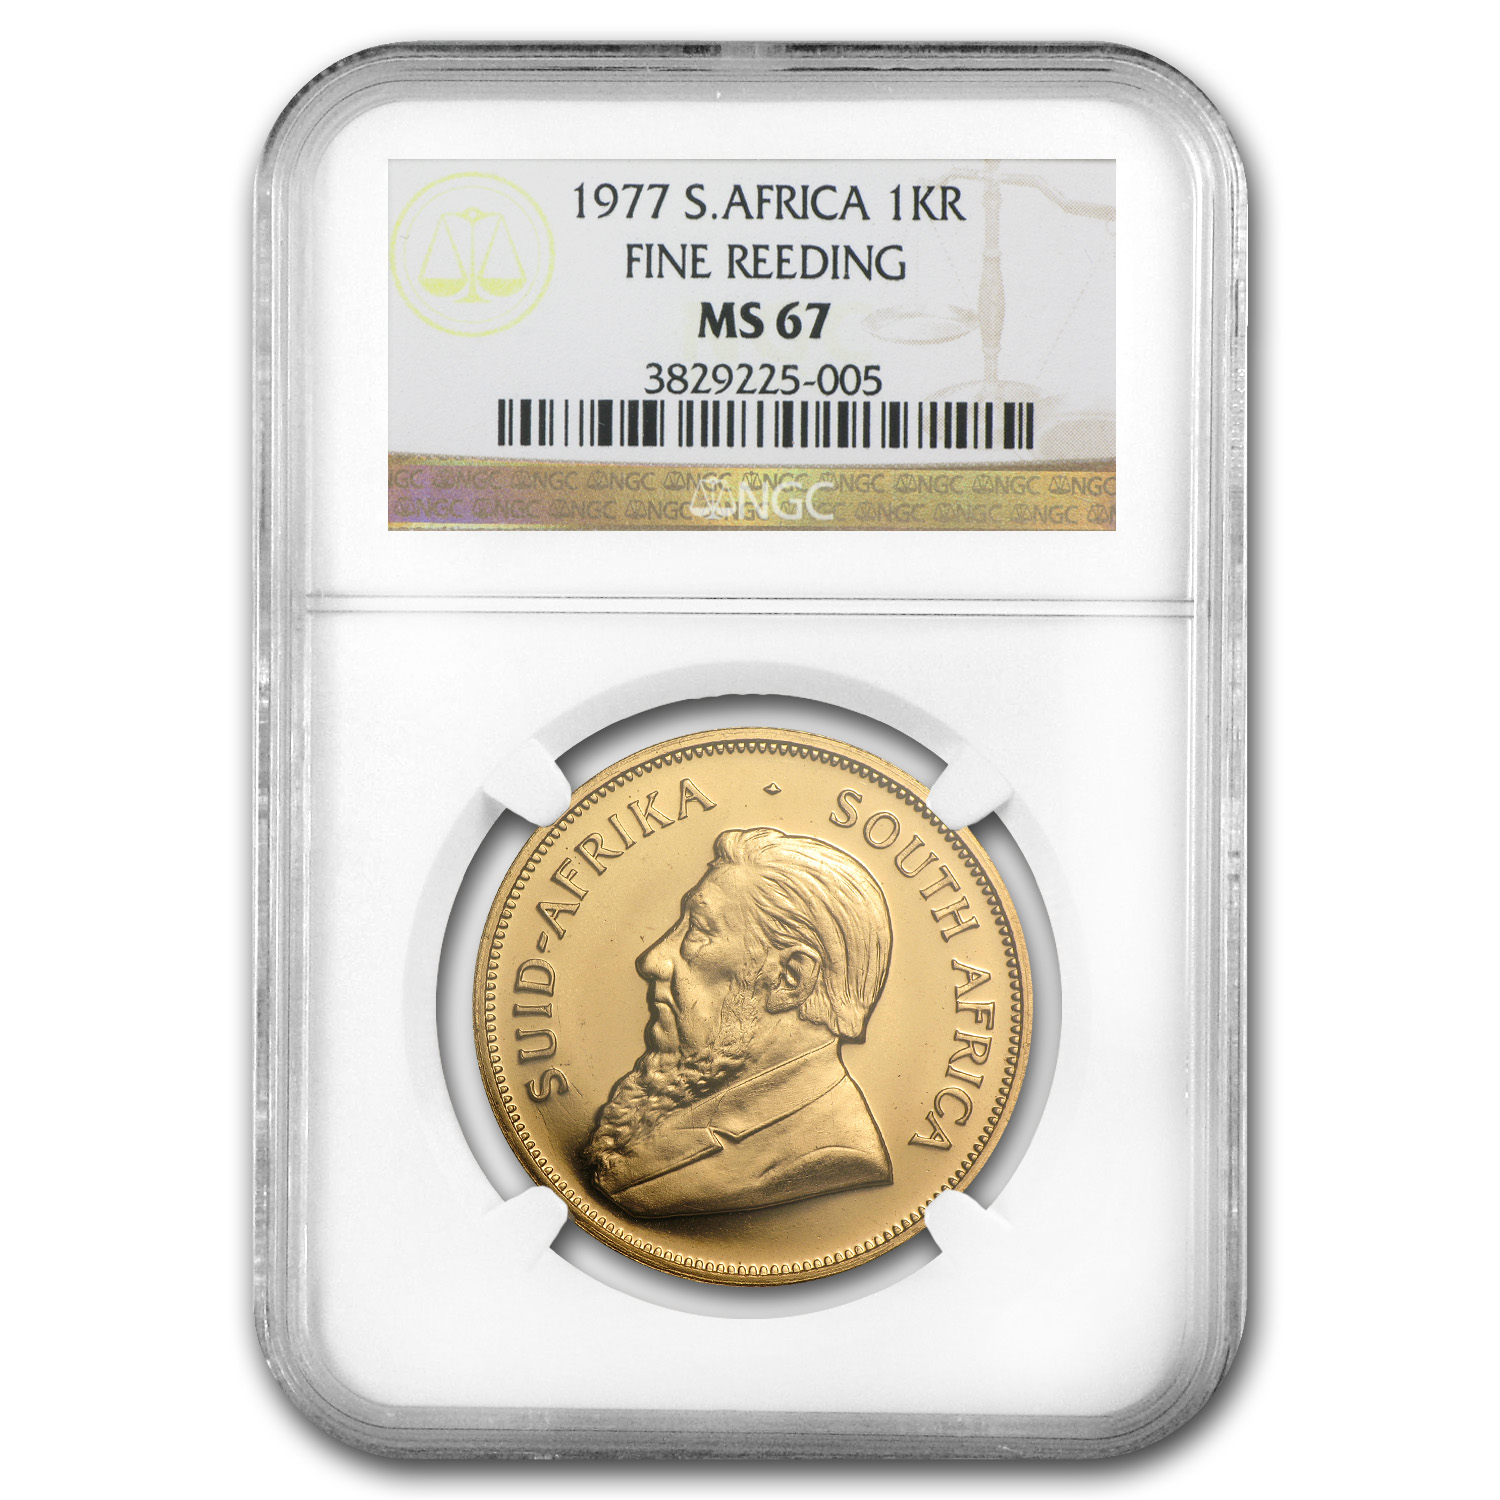 1977 South Africa 1 oz Gold Krugerrand MS-67 NGC (Fine Reeding)